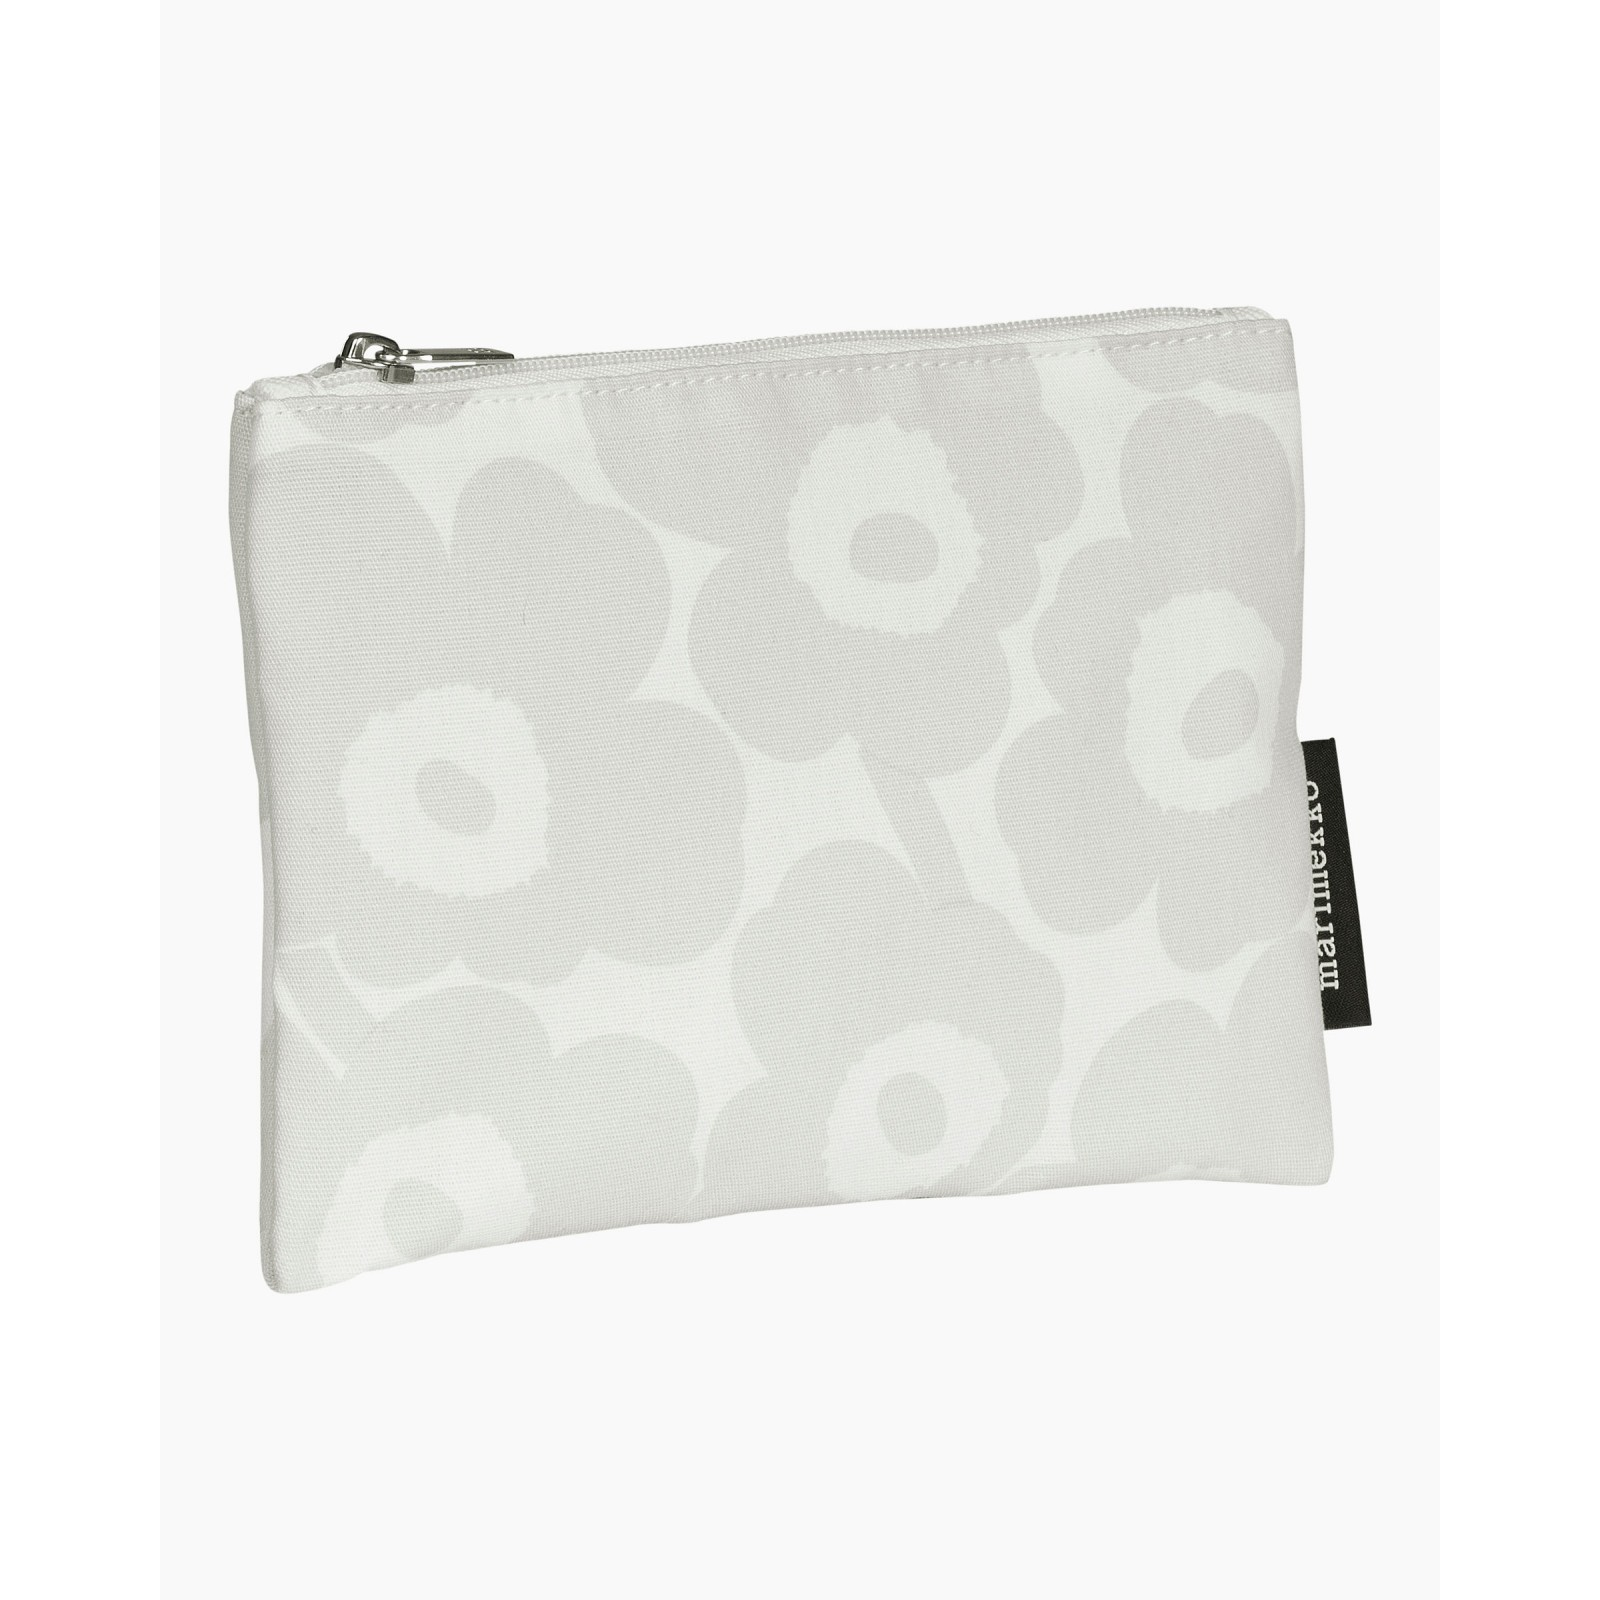 Kaika Mini Unikko pouch white/light grey